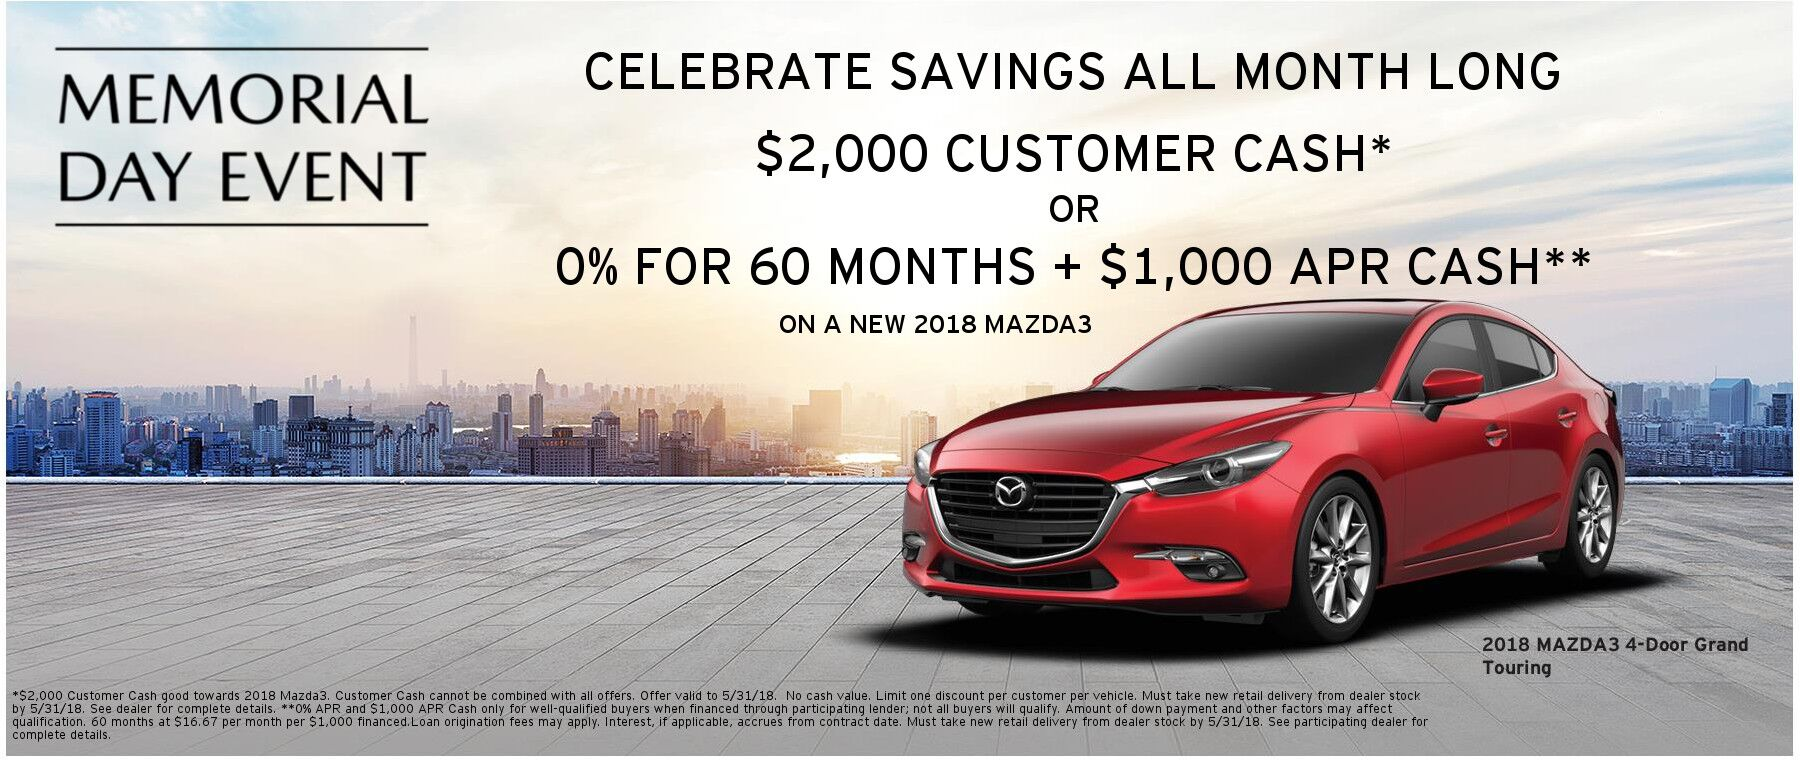 Mazda Memorial Day Savings